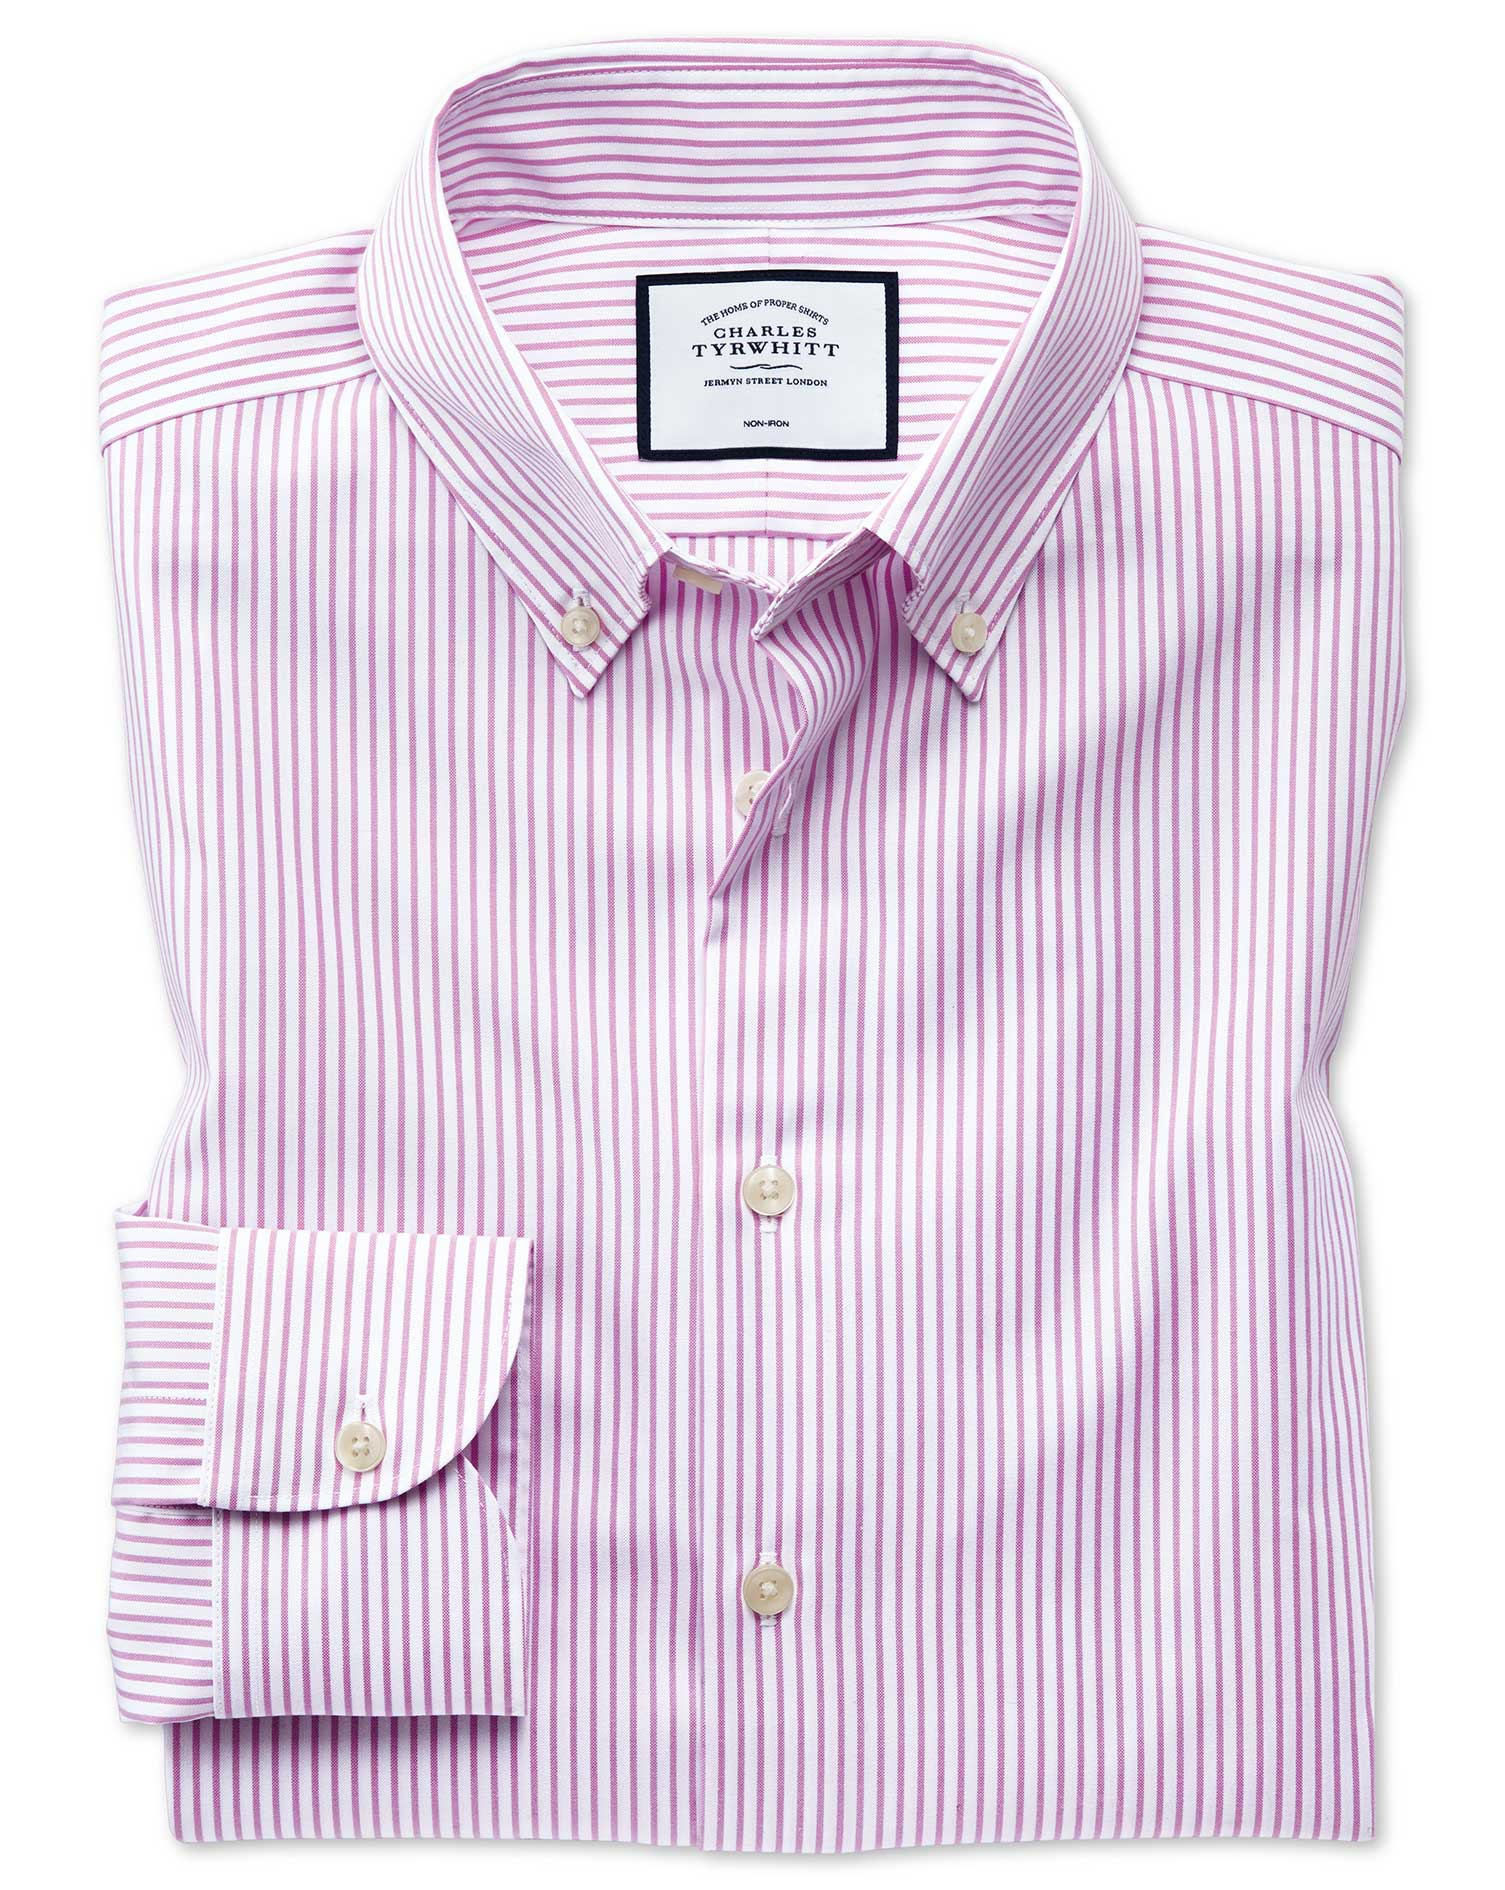 Classic Fit Business Casual Non-Iron Button-Down Pink Stripe Cotton Formal Shirt Single Cuff Size 16